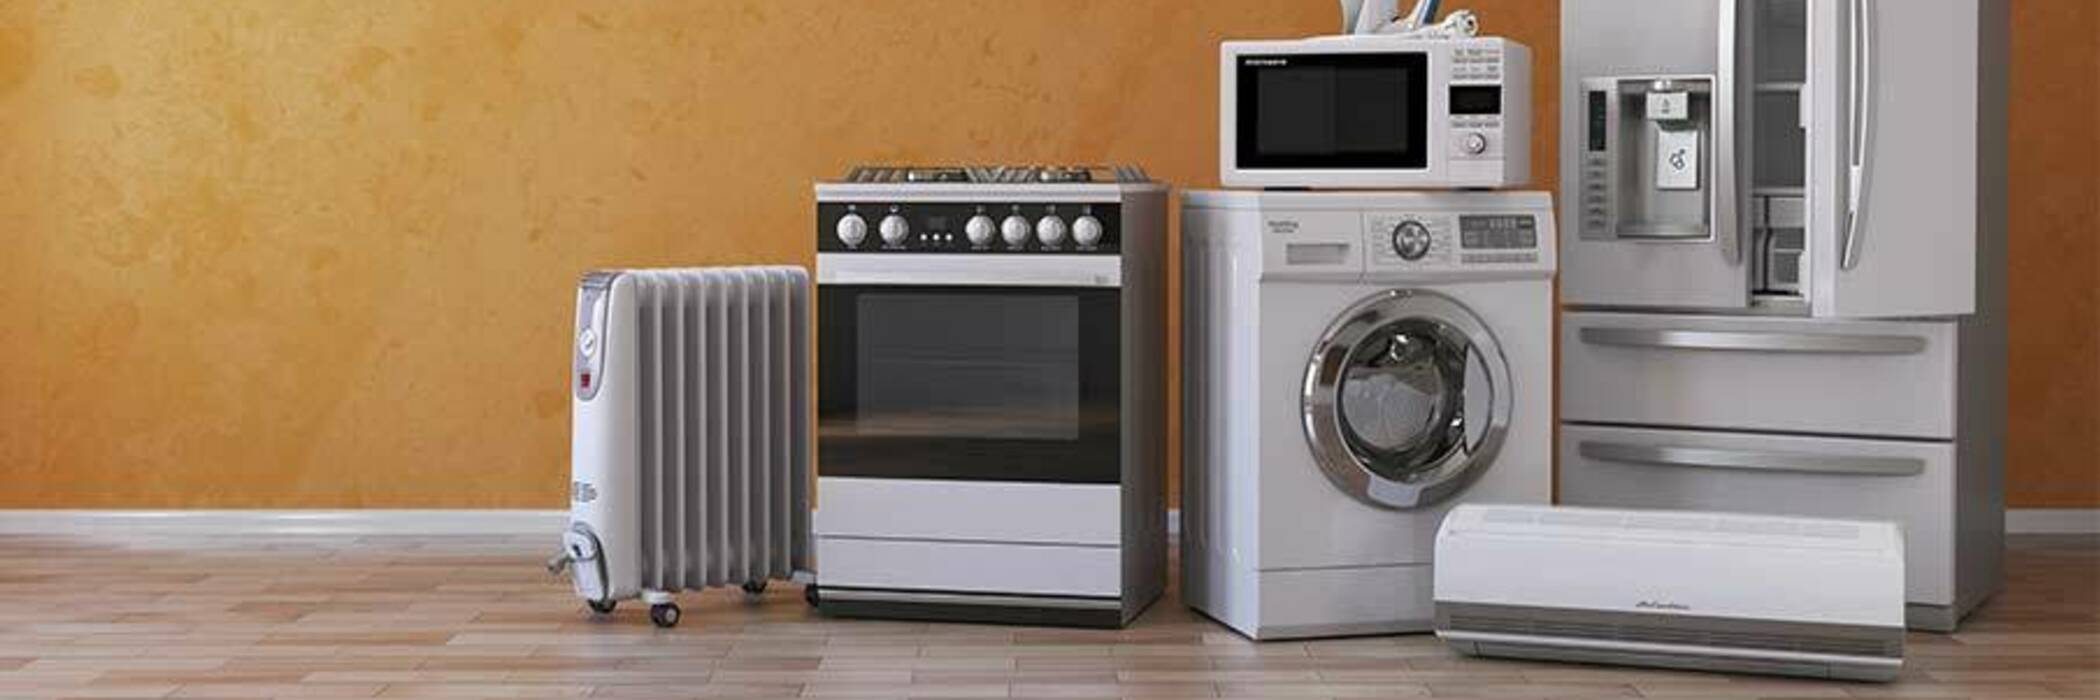 Kitchen, heating and laundry appliances.